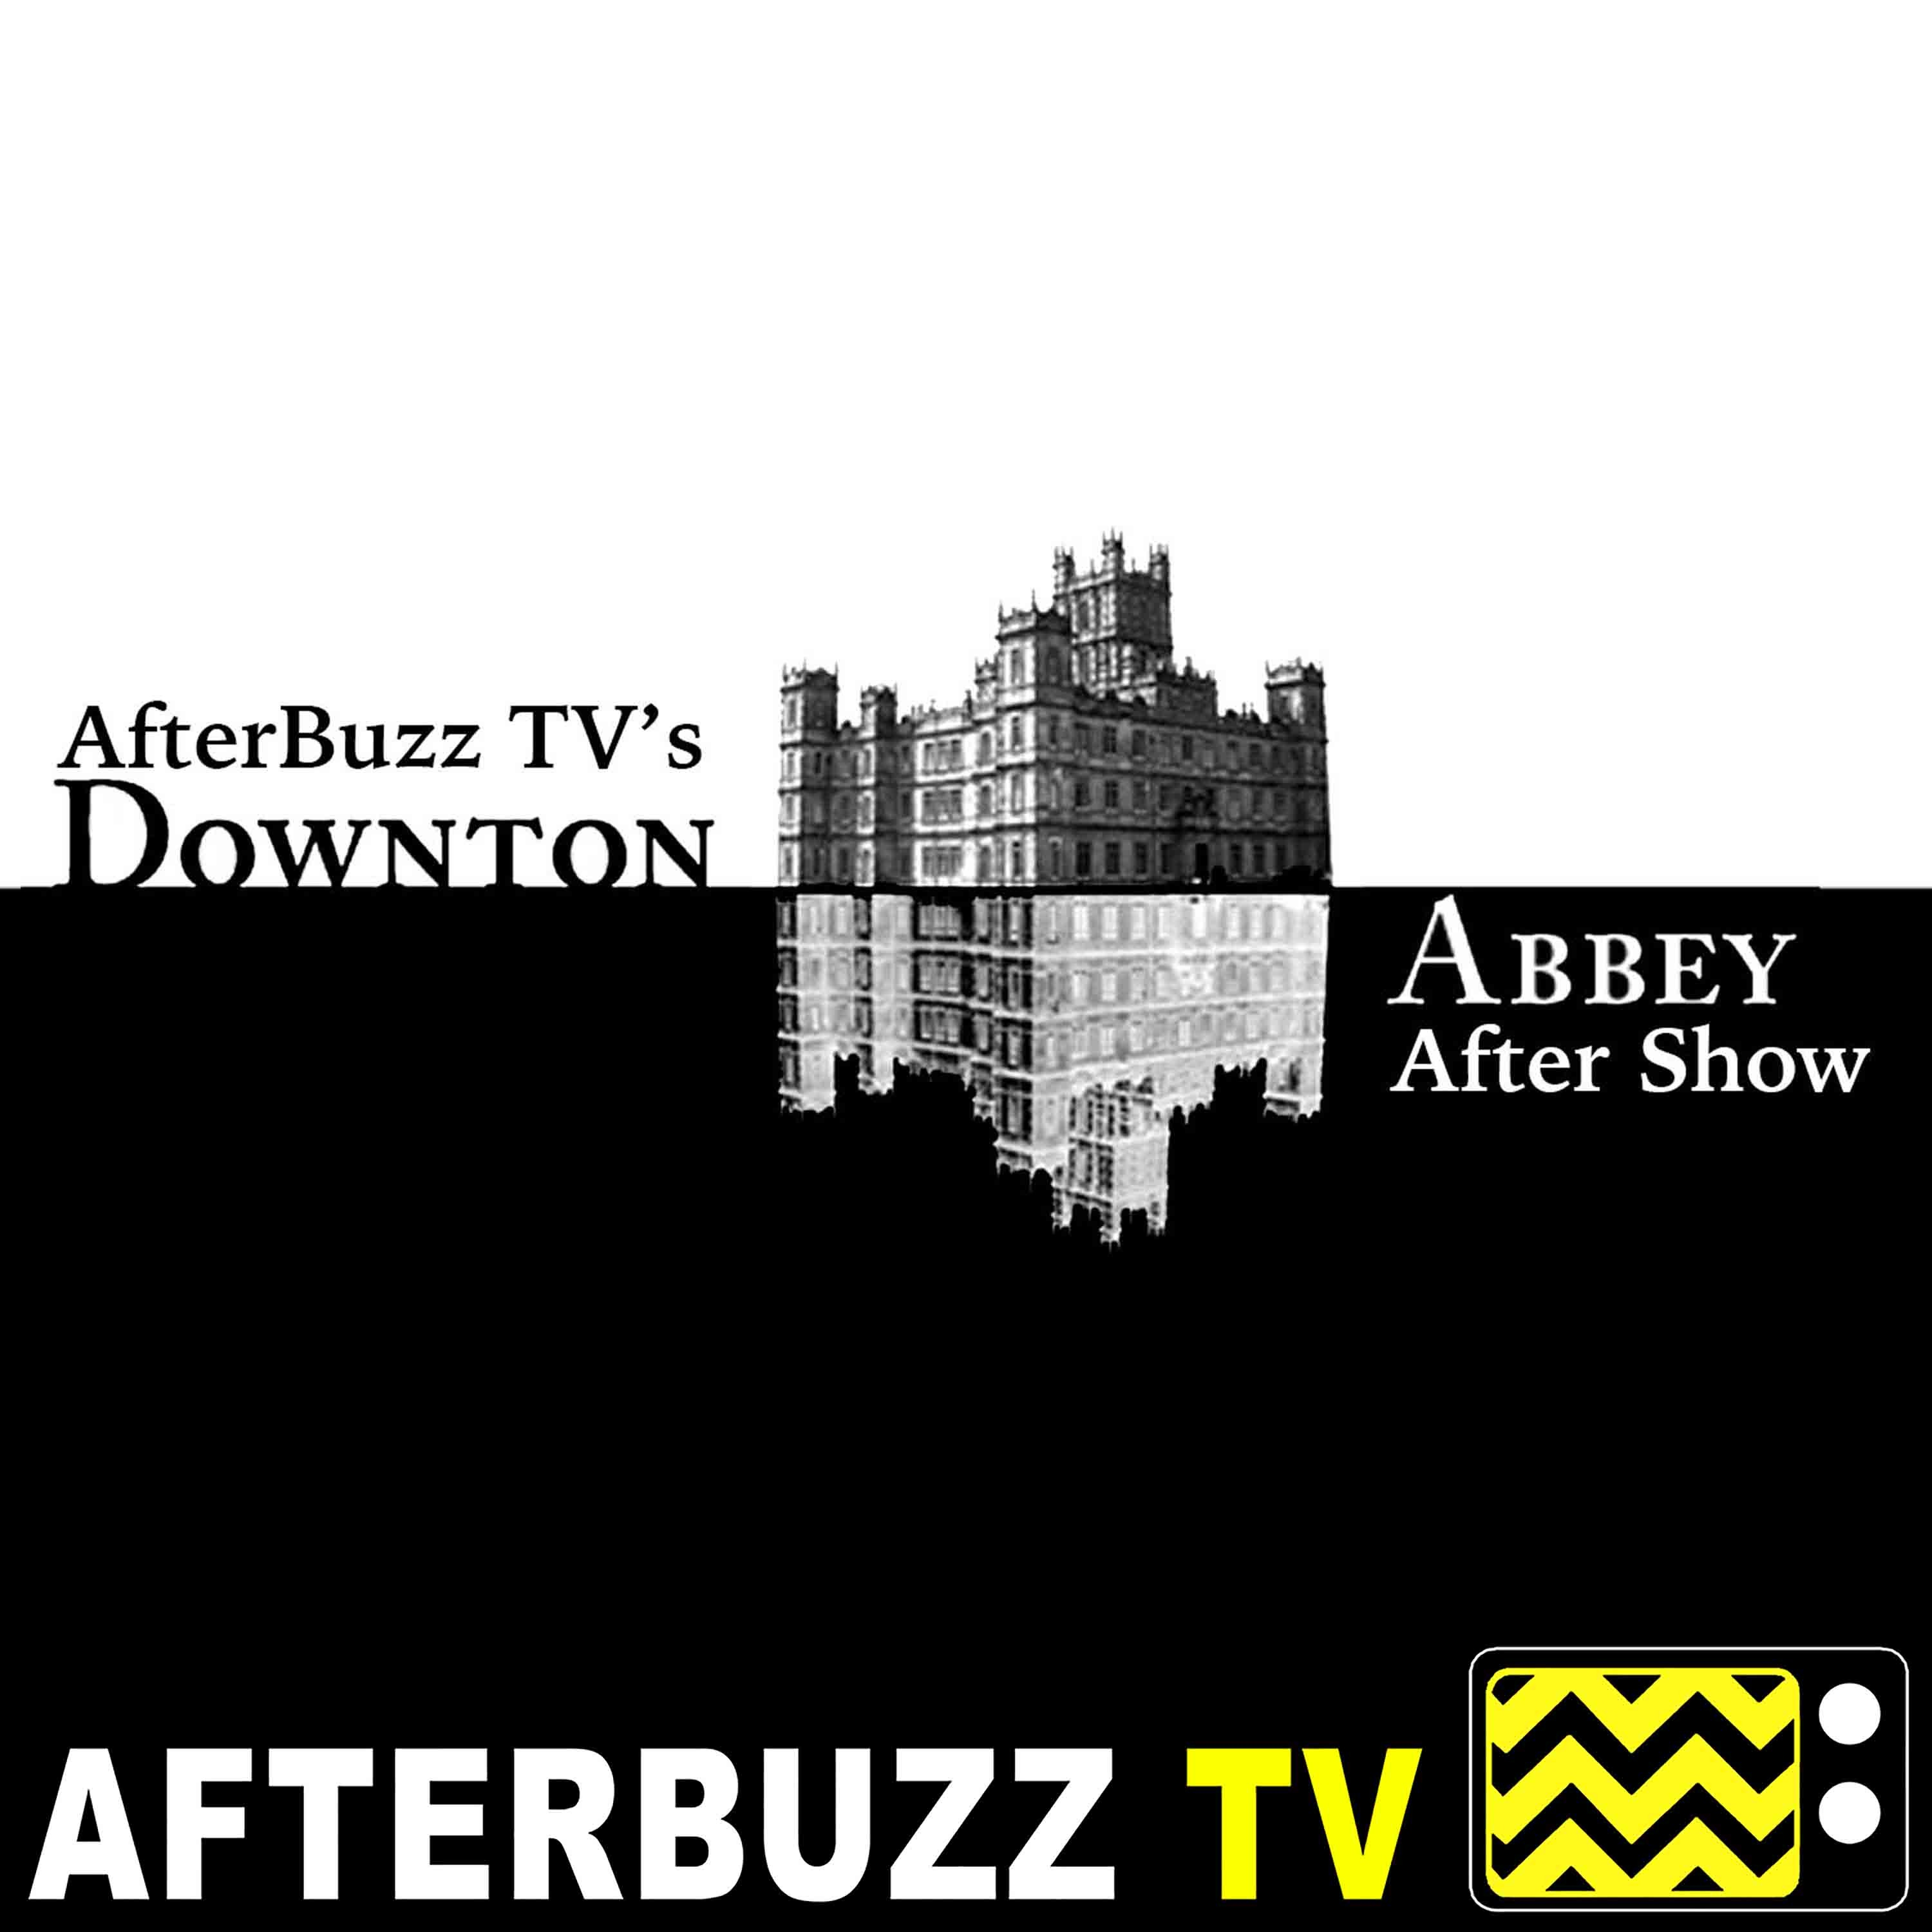 Downton Abbey UK S:6 | Episode 5 | AfterBuzz TV AfterShow